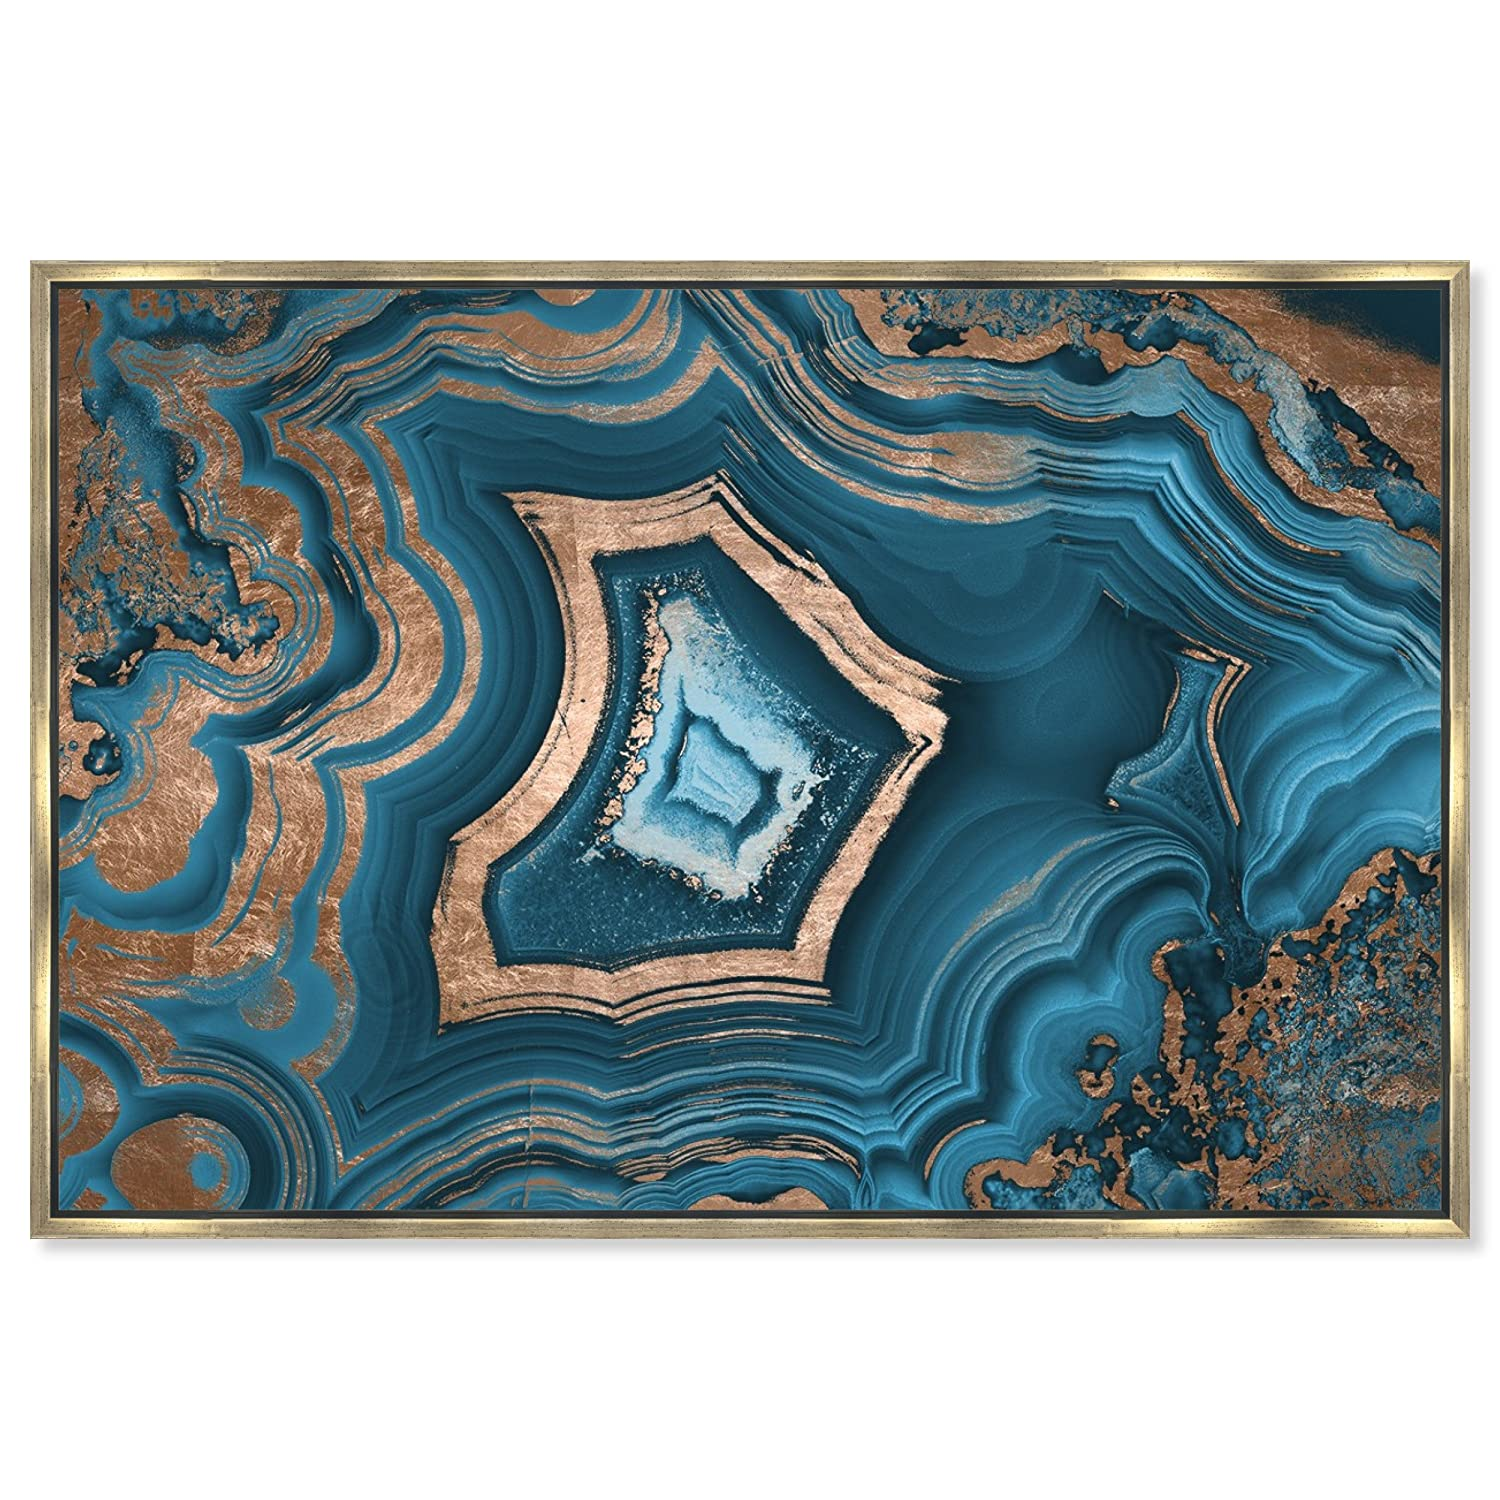 The oliver gal artist co dreaming about you geode framed abstract wall art 15 x 10 blue